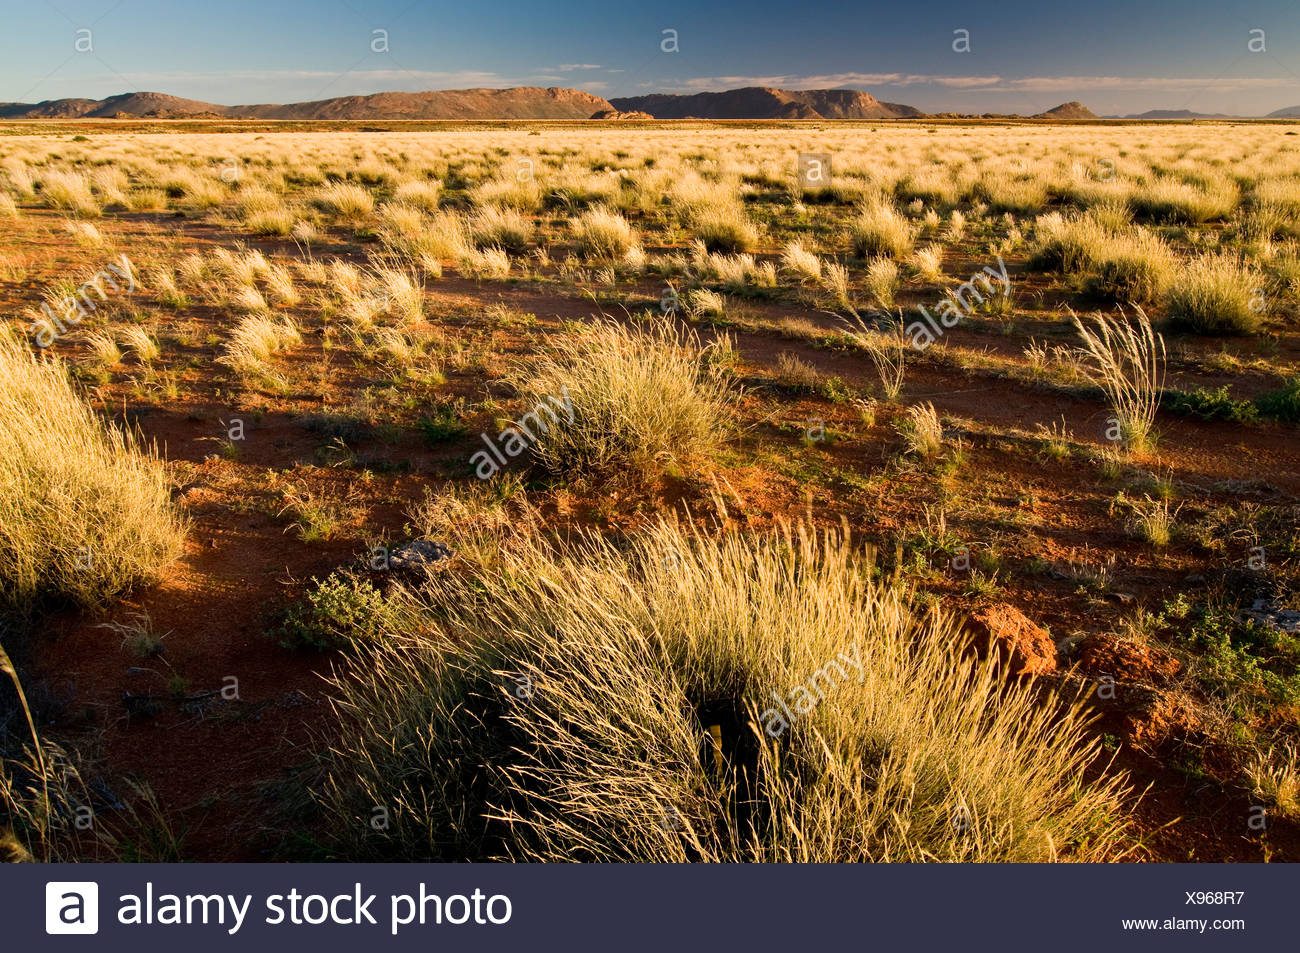 Landscape with grass, Richtersveld National Park, Northern Cape, South Africa, Africa - Stock Image